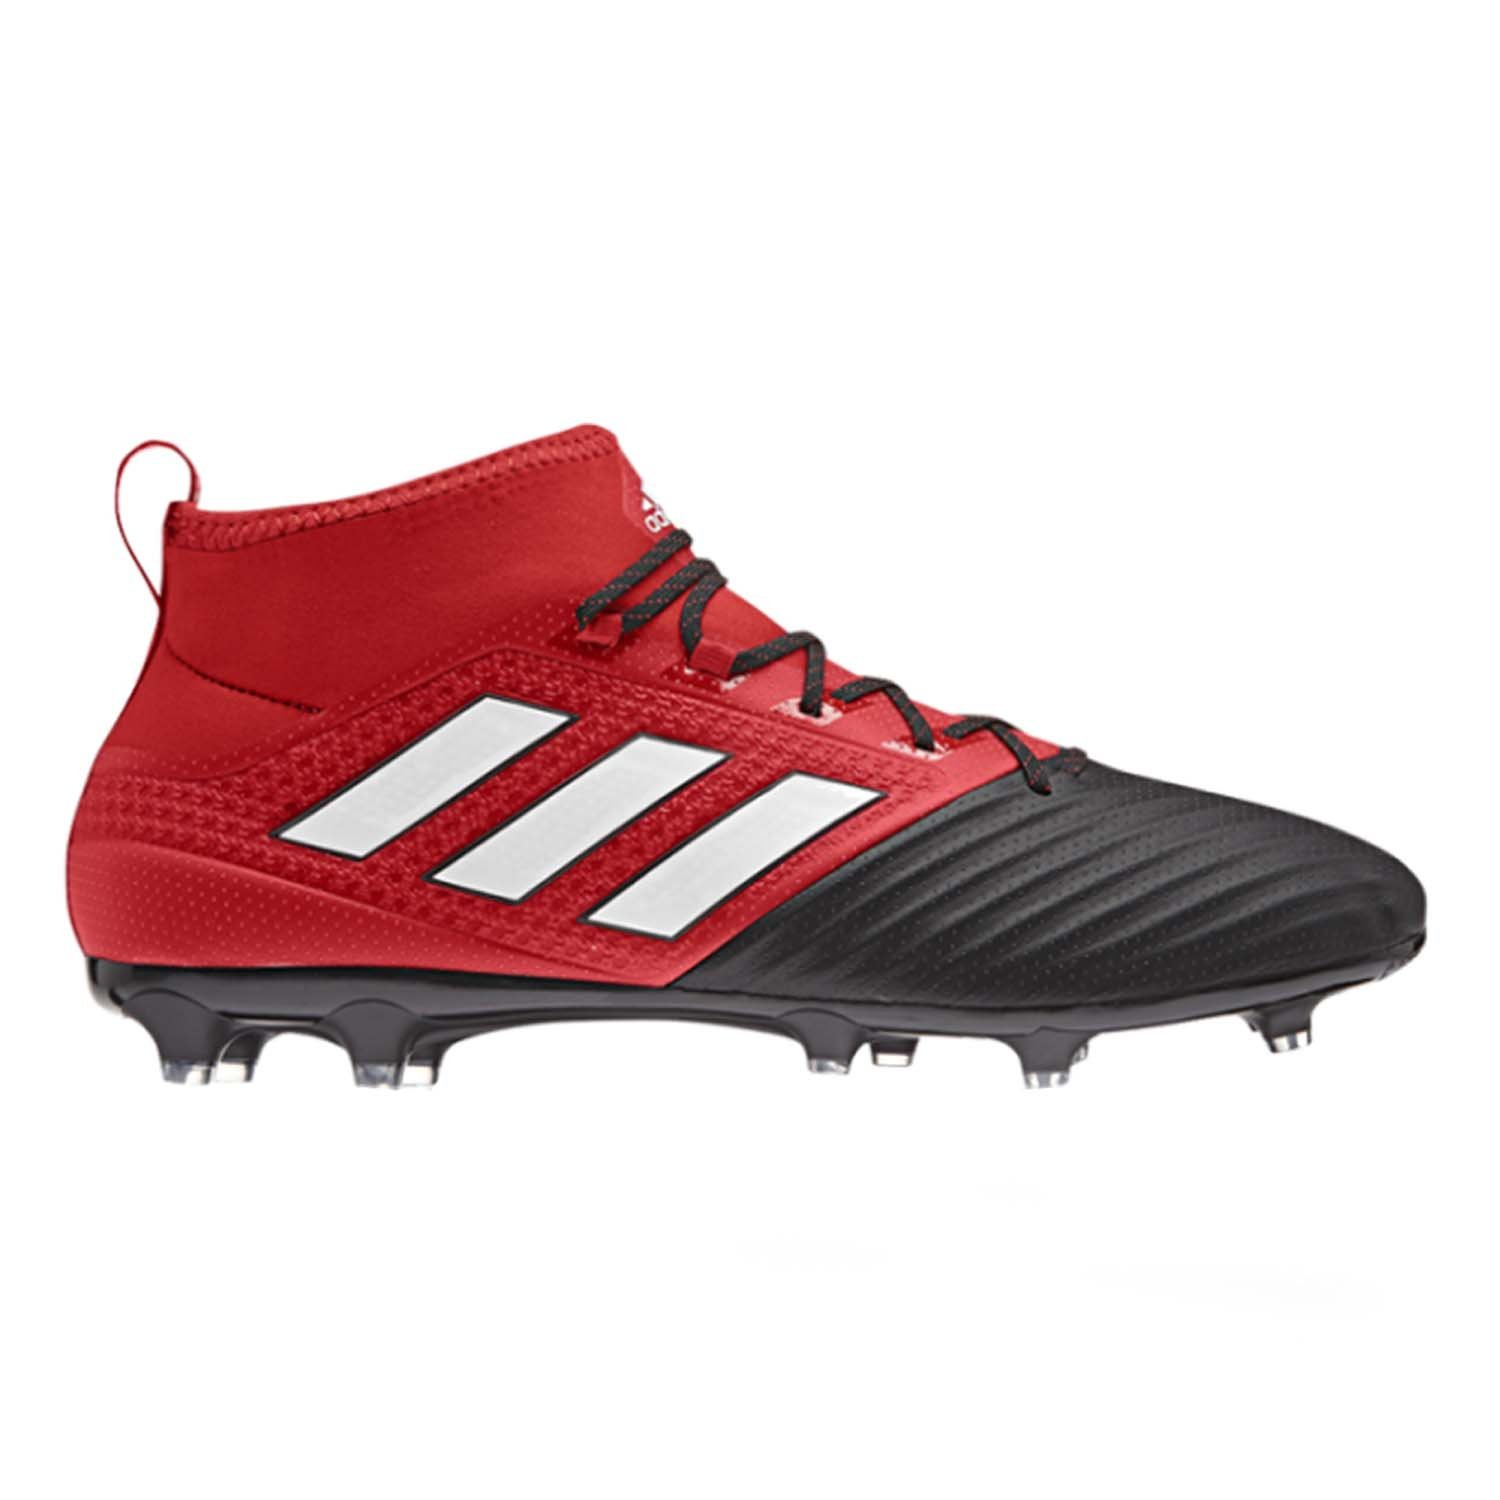 adidas Men's Ace 17.2 Primemesh Fg Soccer Shoe, Red/White/Black, (11 M US)